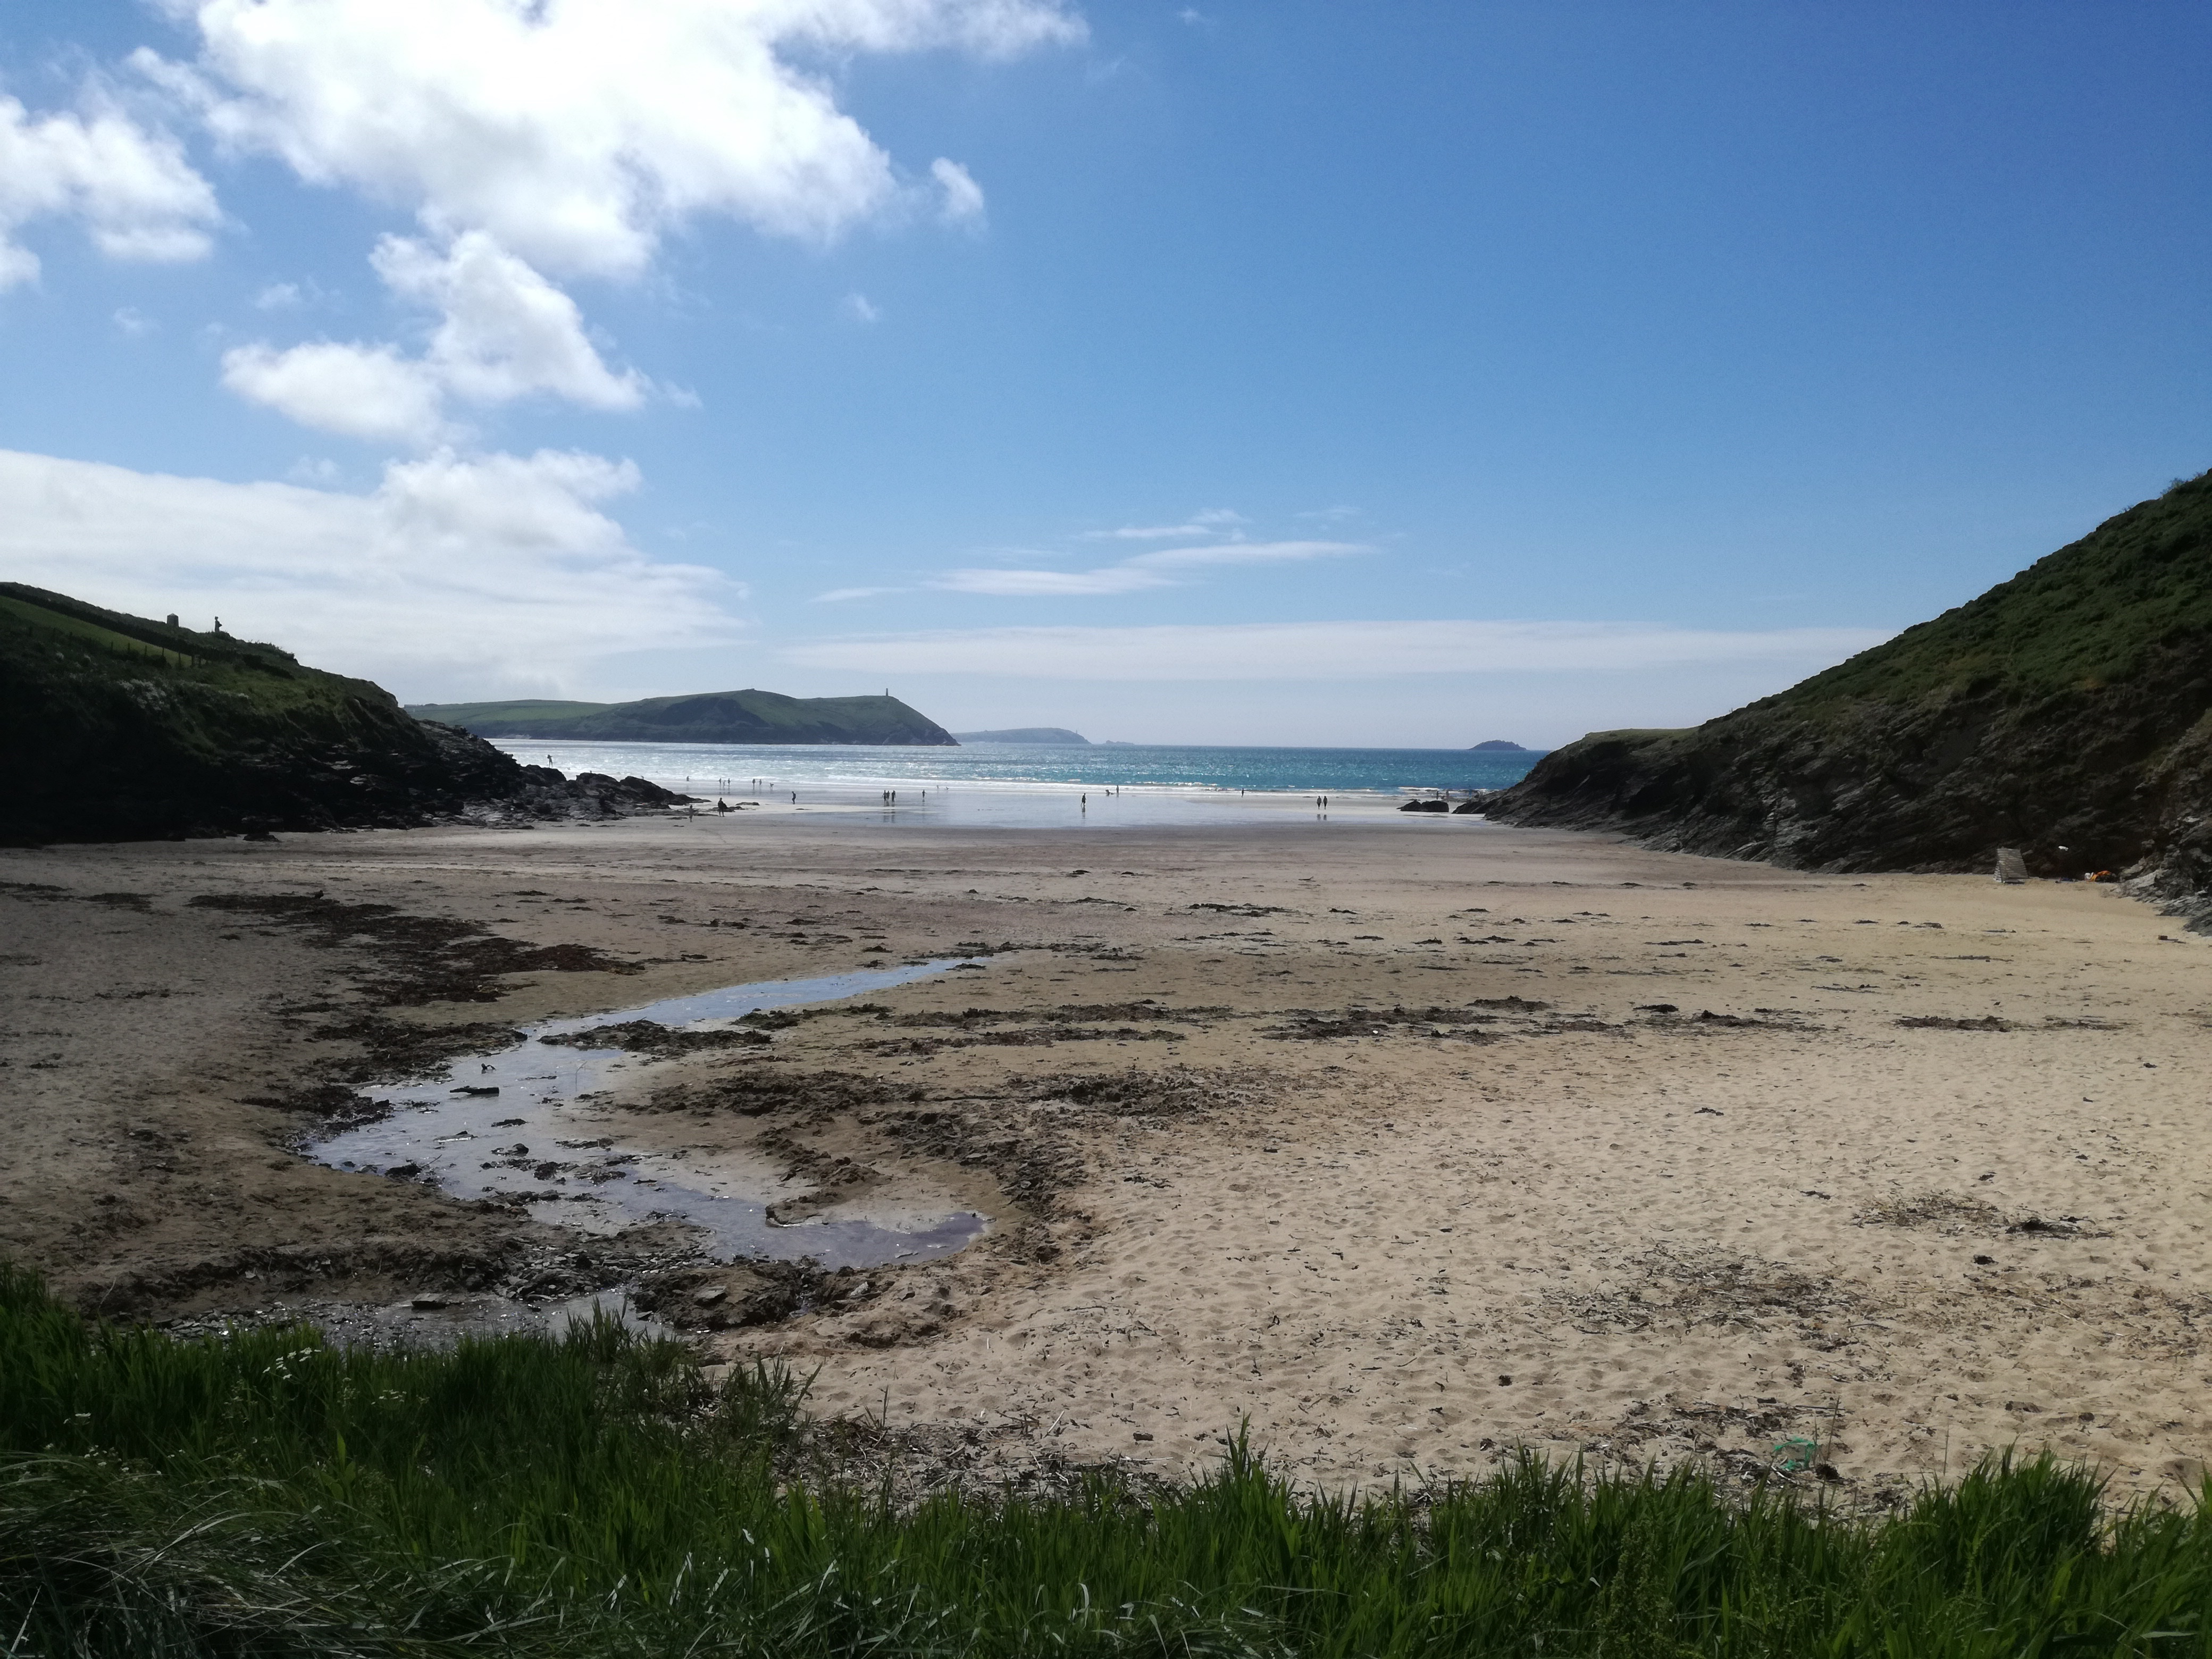 Cornish beach at low tide